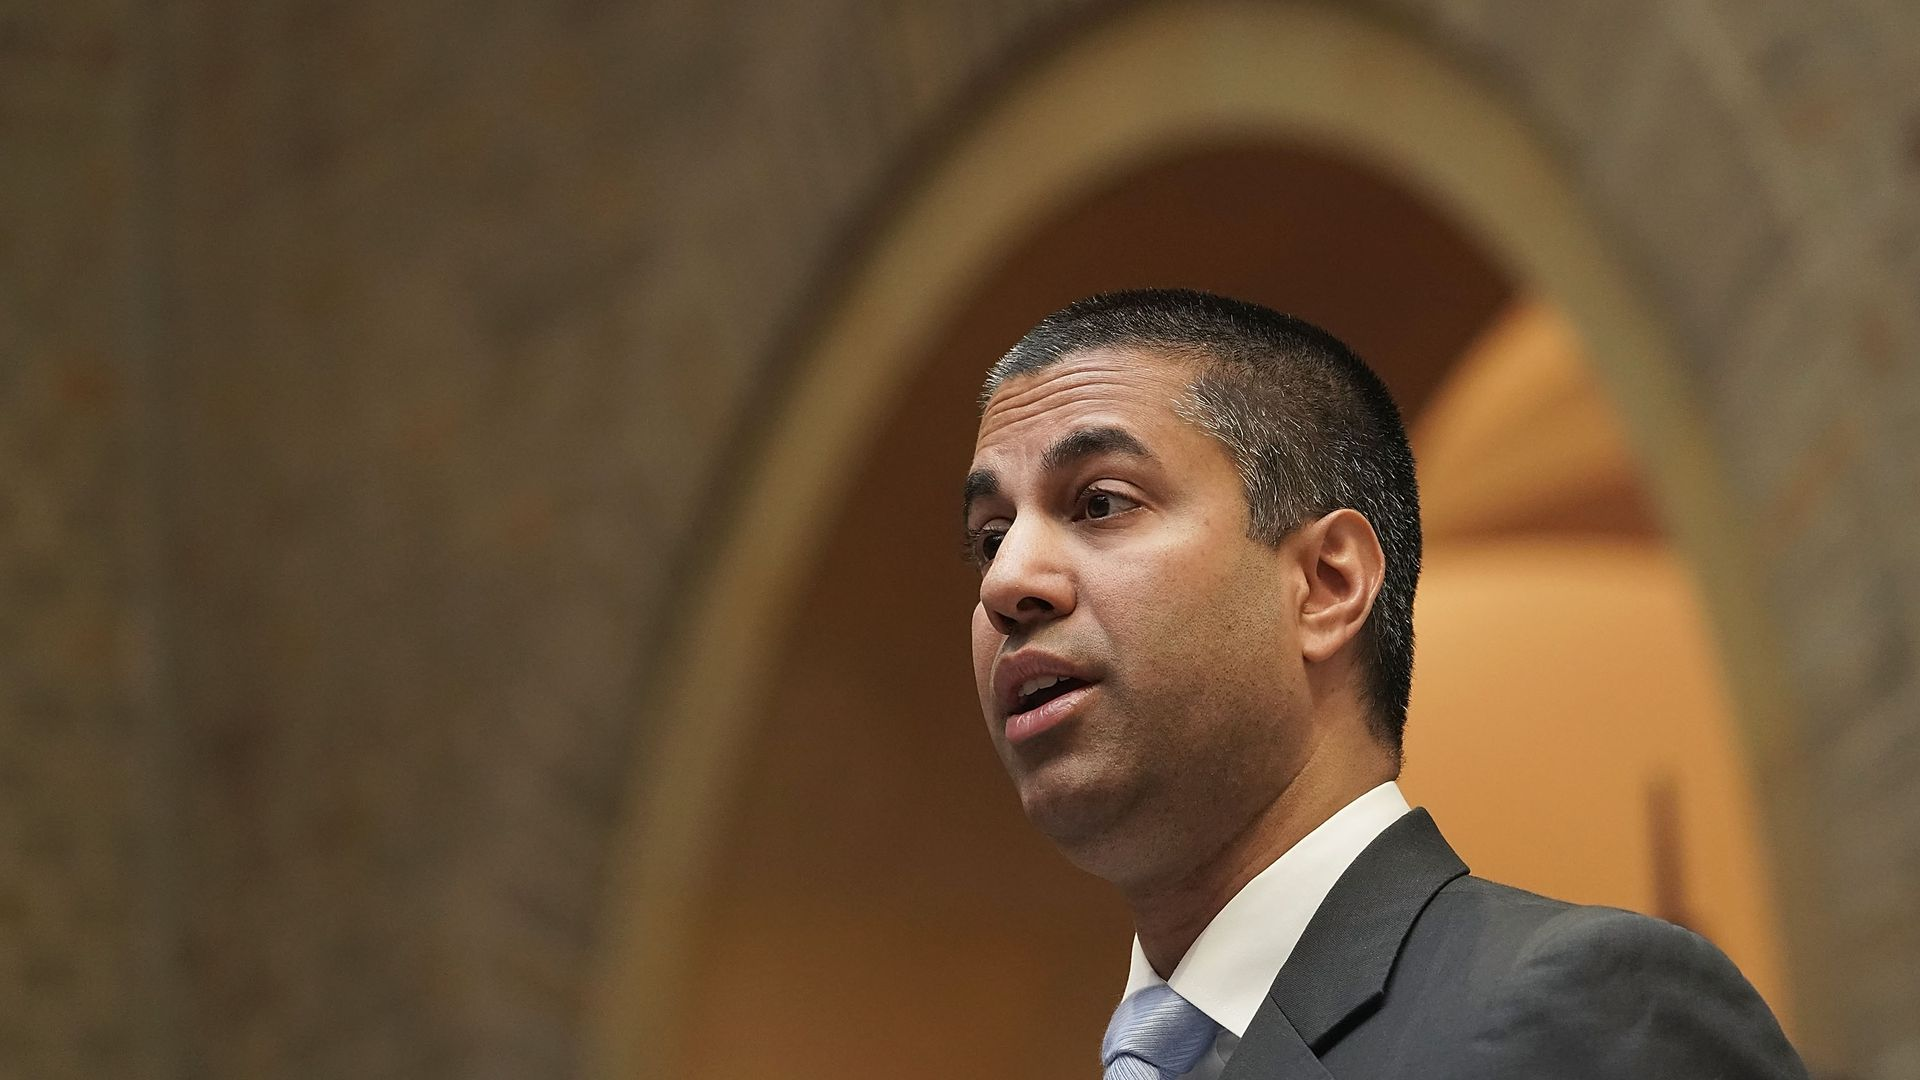 FCC Chairman Ajit Pai in profile